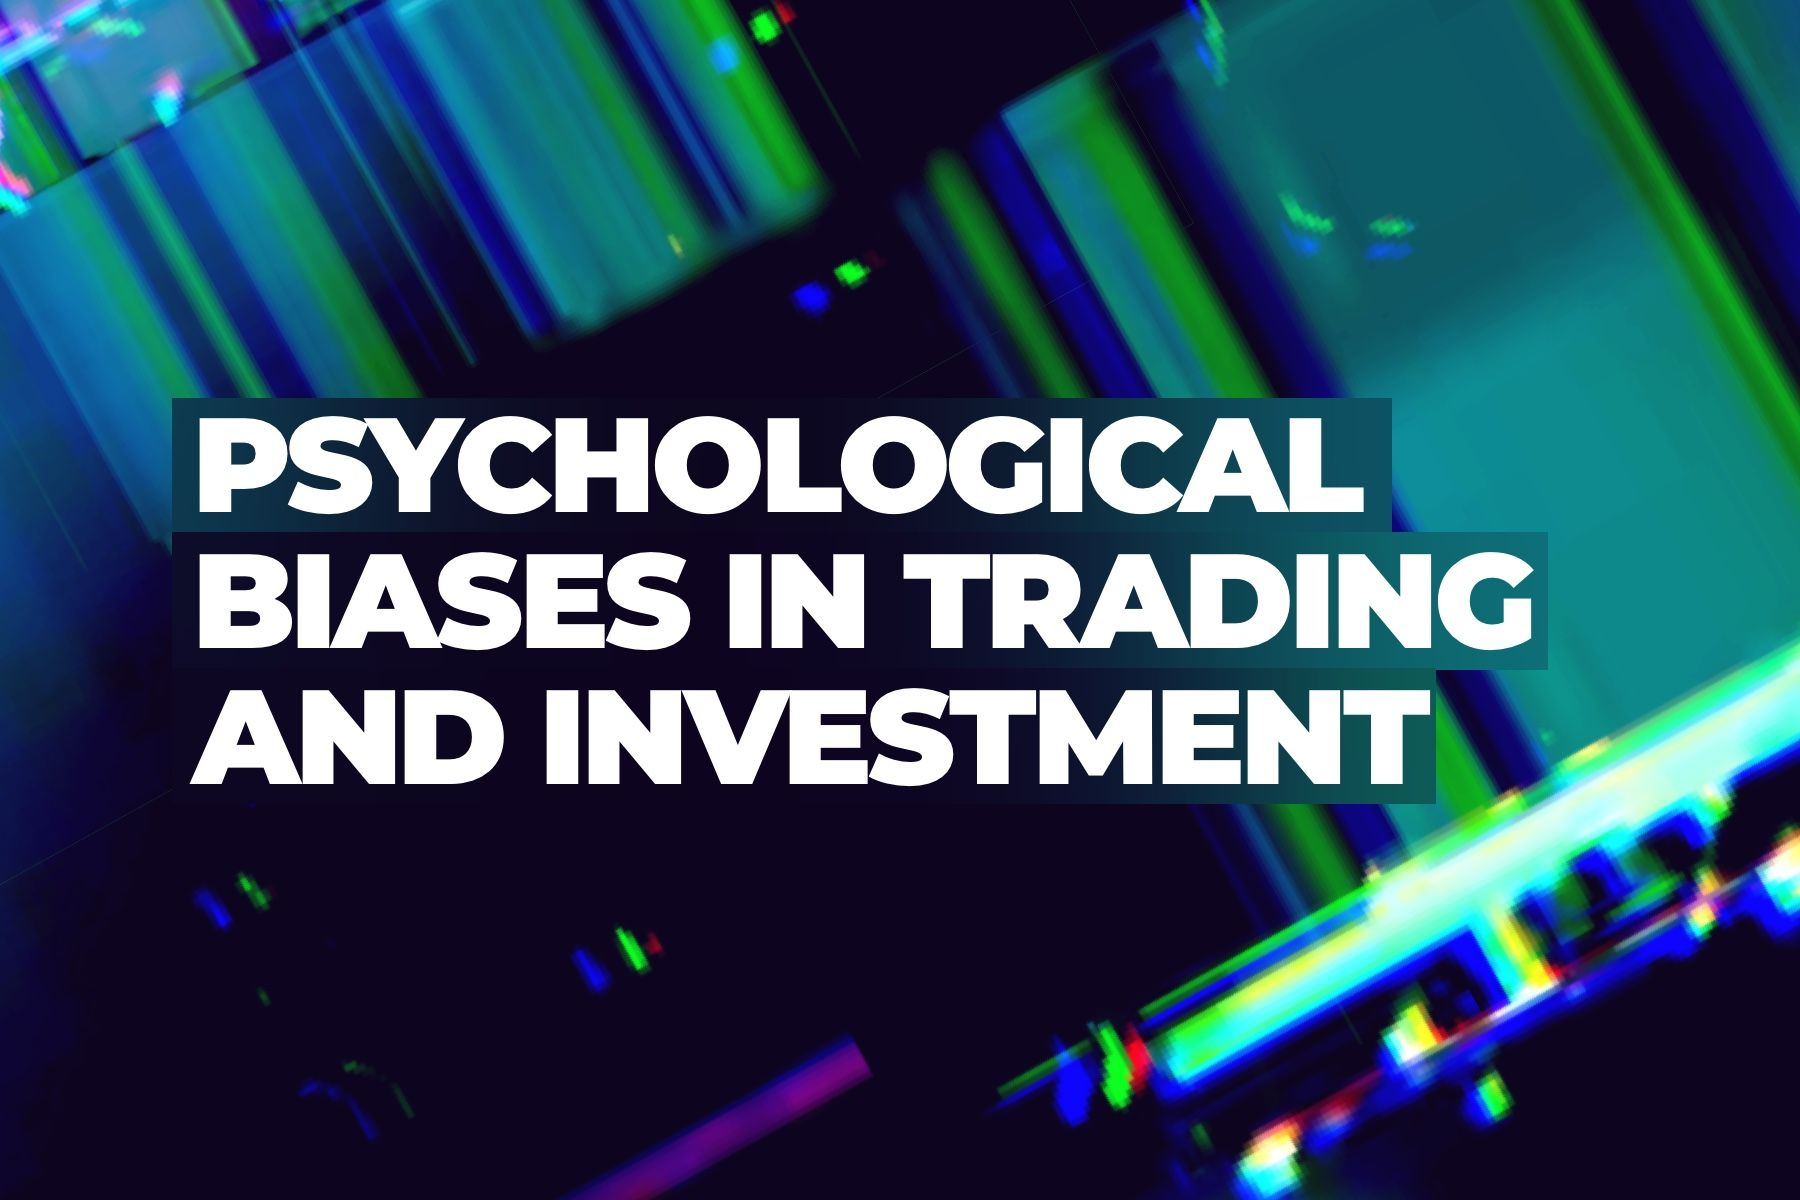 26 psychological biases lead to losses in crypto trading and investment — here's how to avoid them